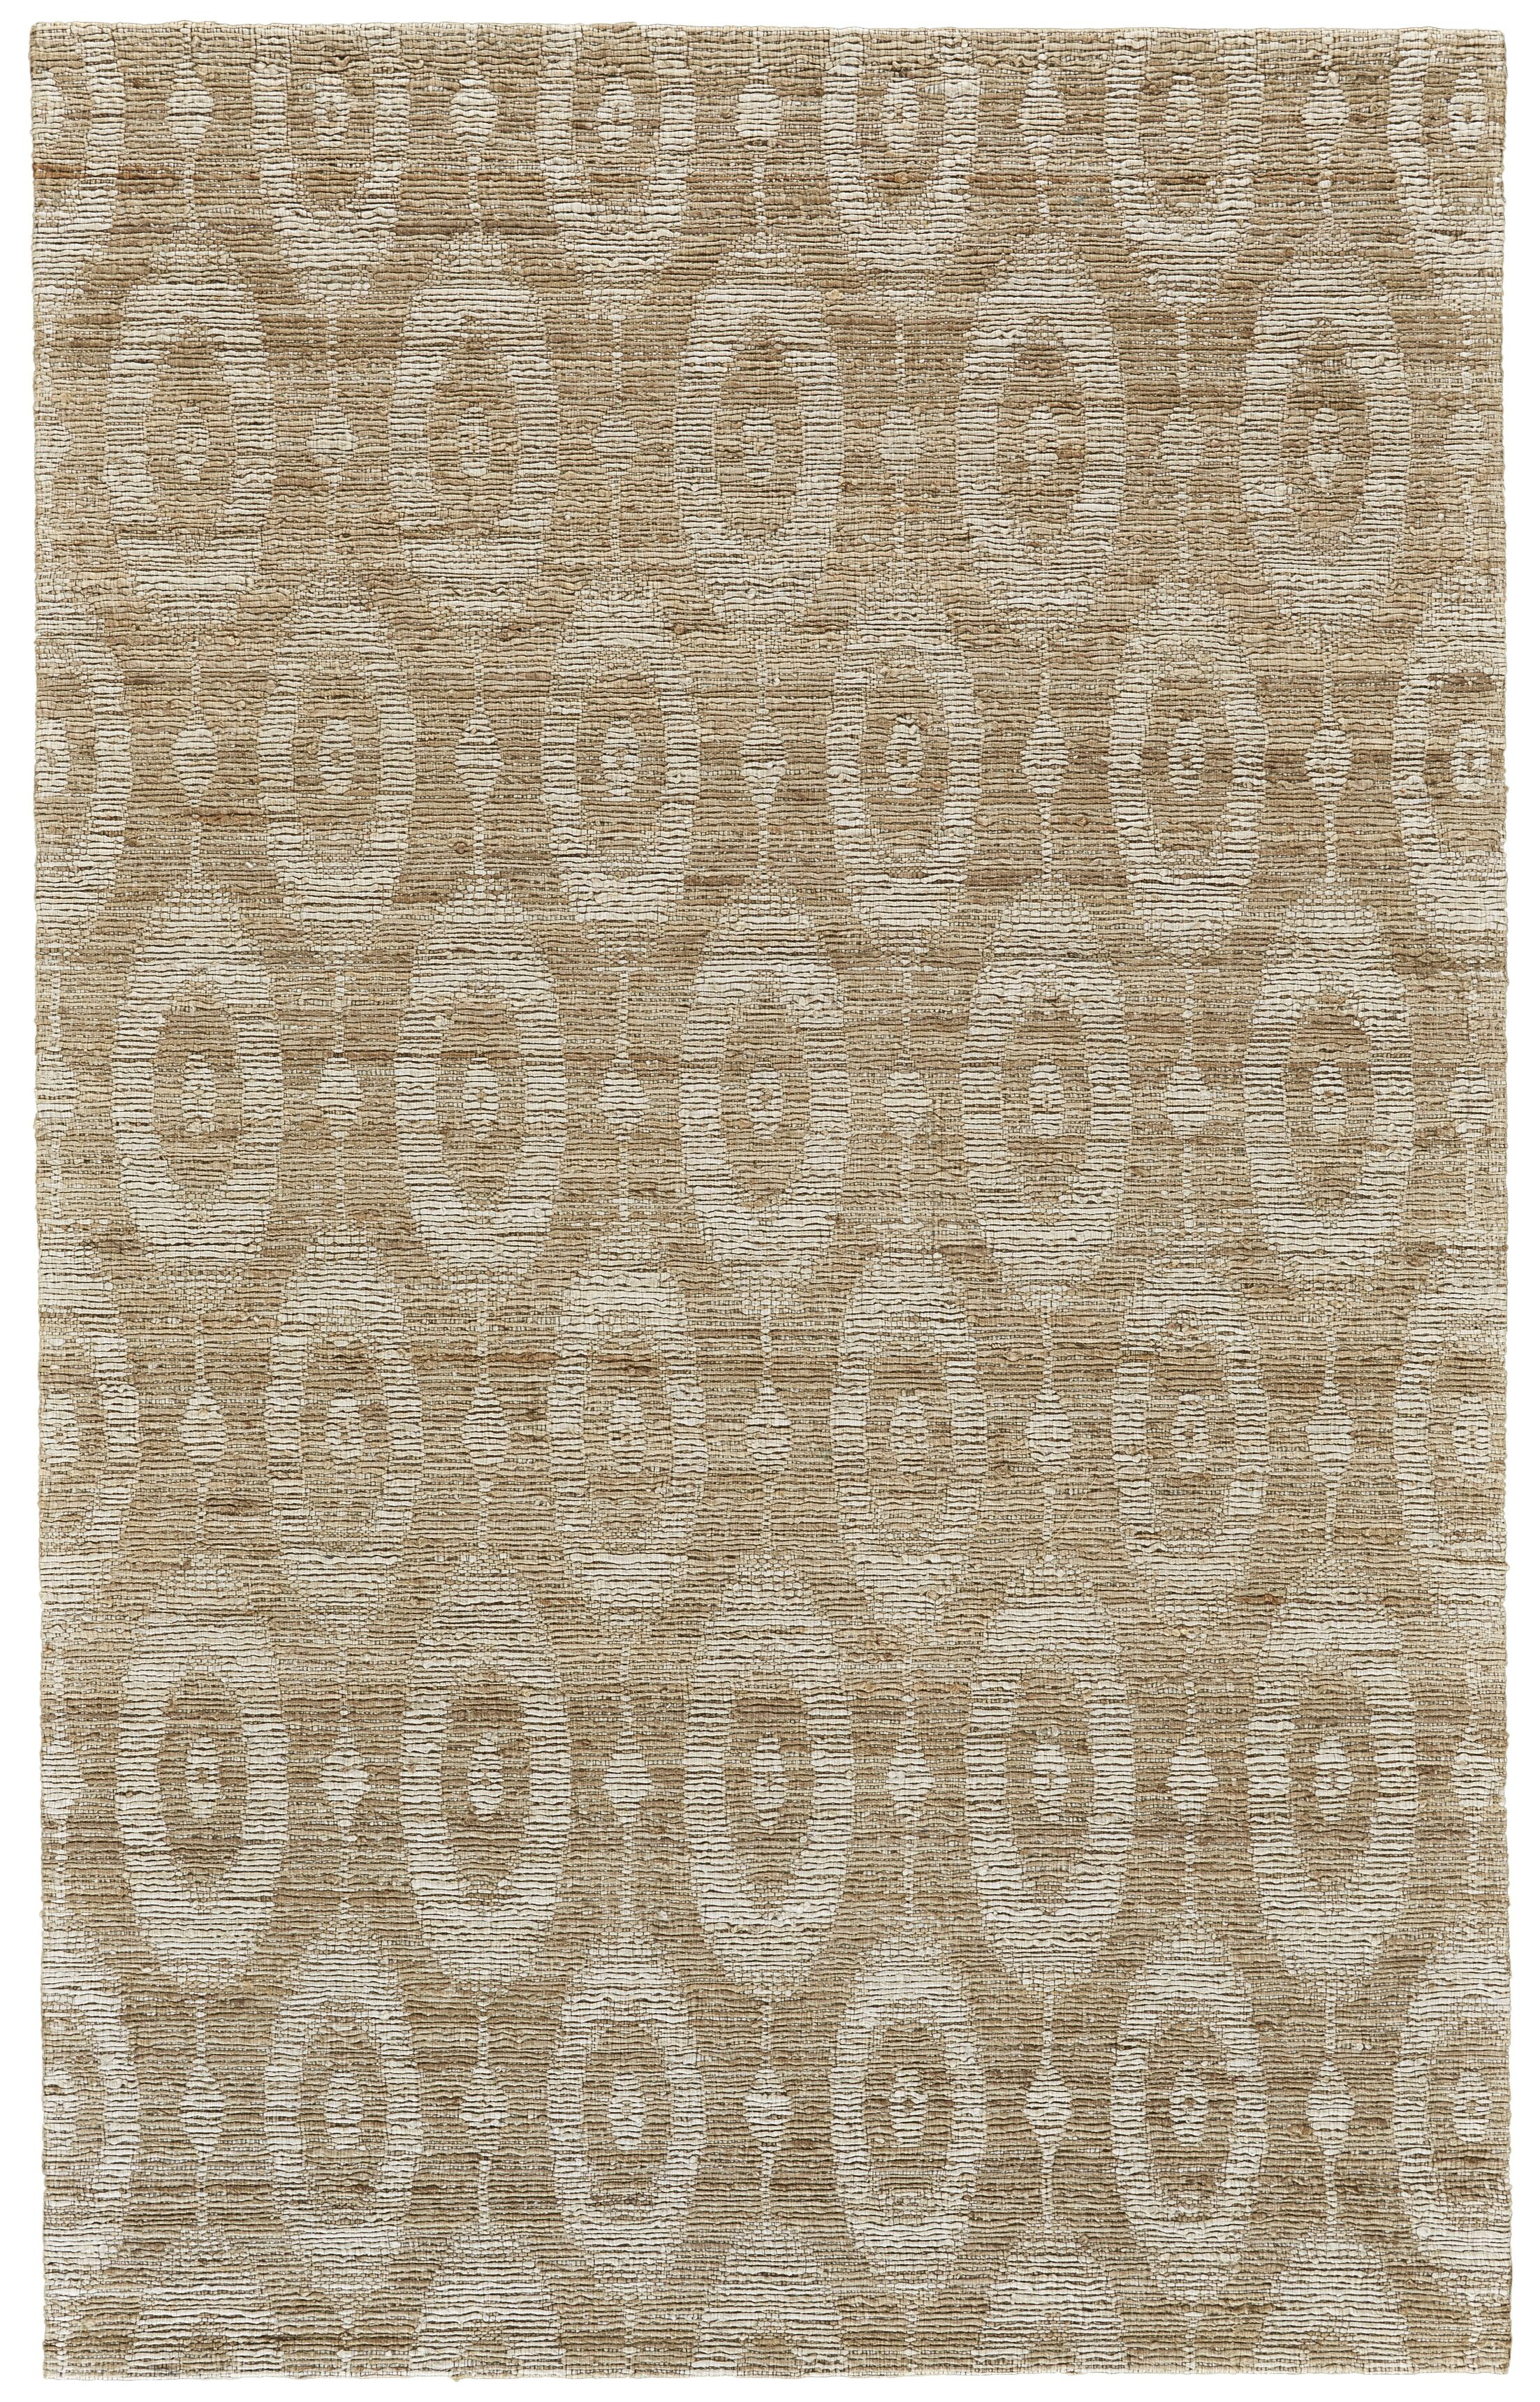 Reich Hand-Woven Brown Area Rug Rug Size: Rectangle 8' x 11'